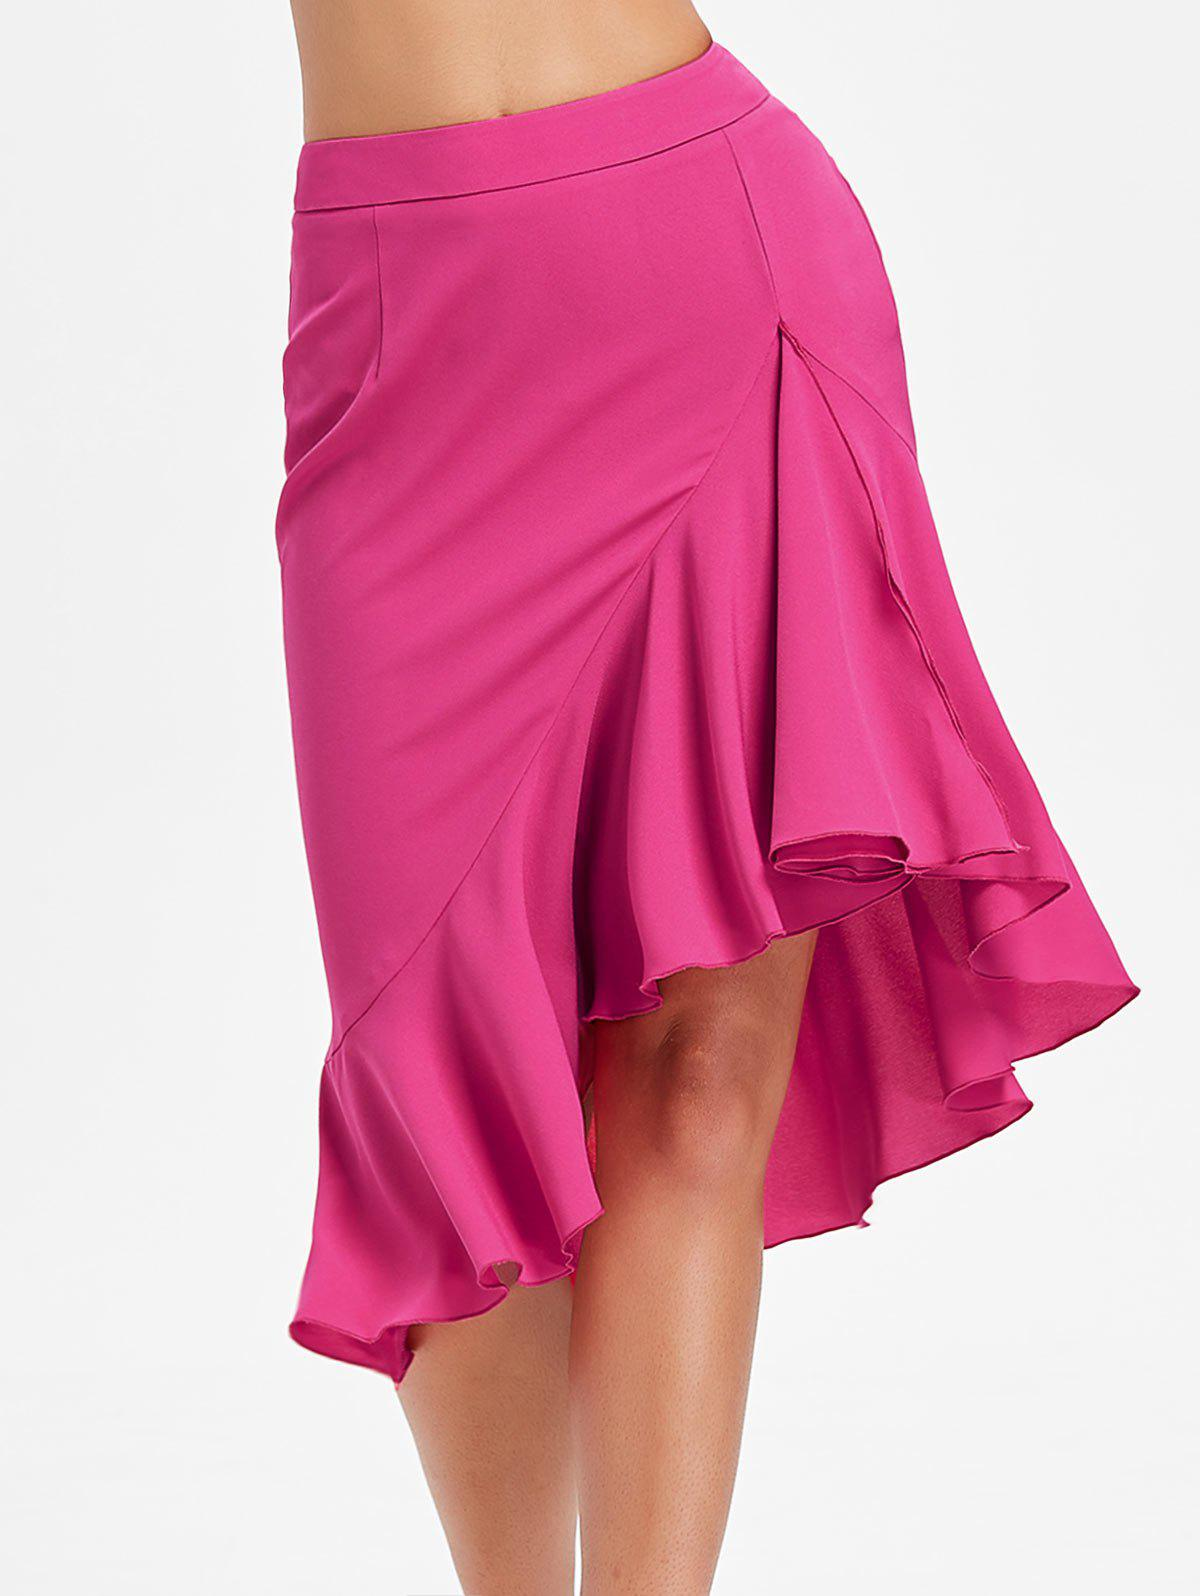 Ruffled High Low Mermaid Skirt - ROSE RED M